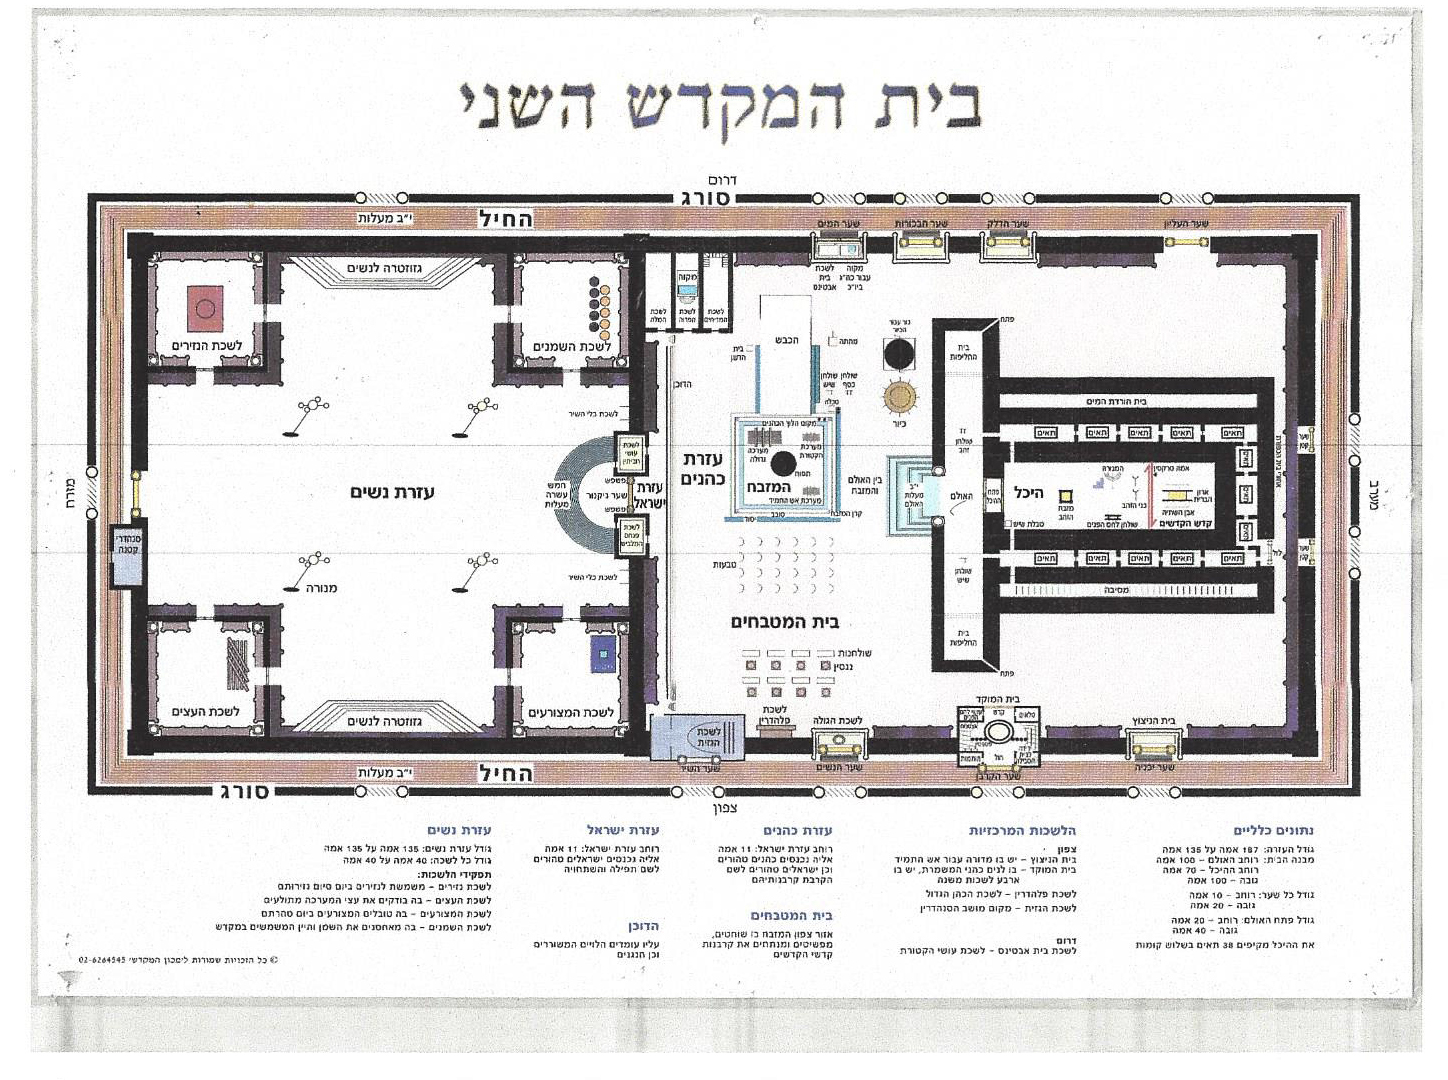 Building The Third Temple The Mitzvah Project